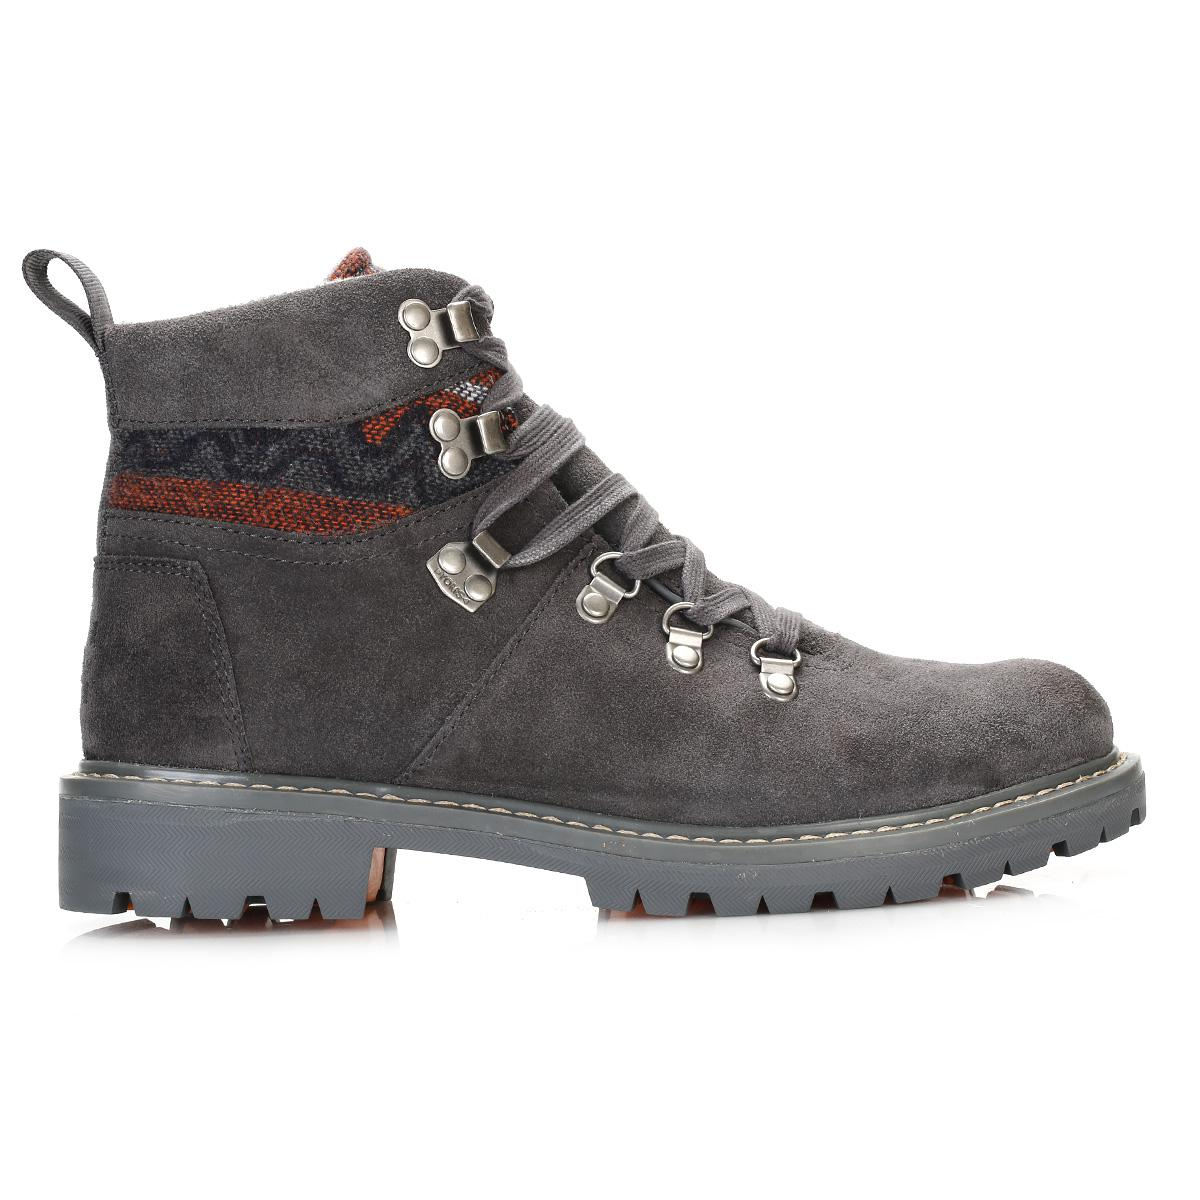 0ed8d67a1ec Lyst - TOMS Womens Iron Grey Summit Hiker Boots in Gray